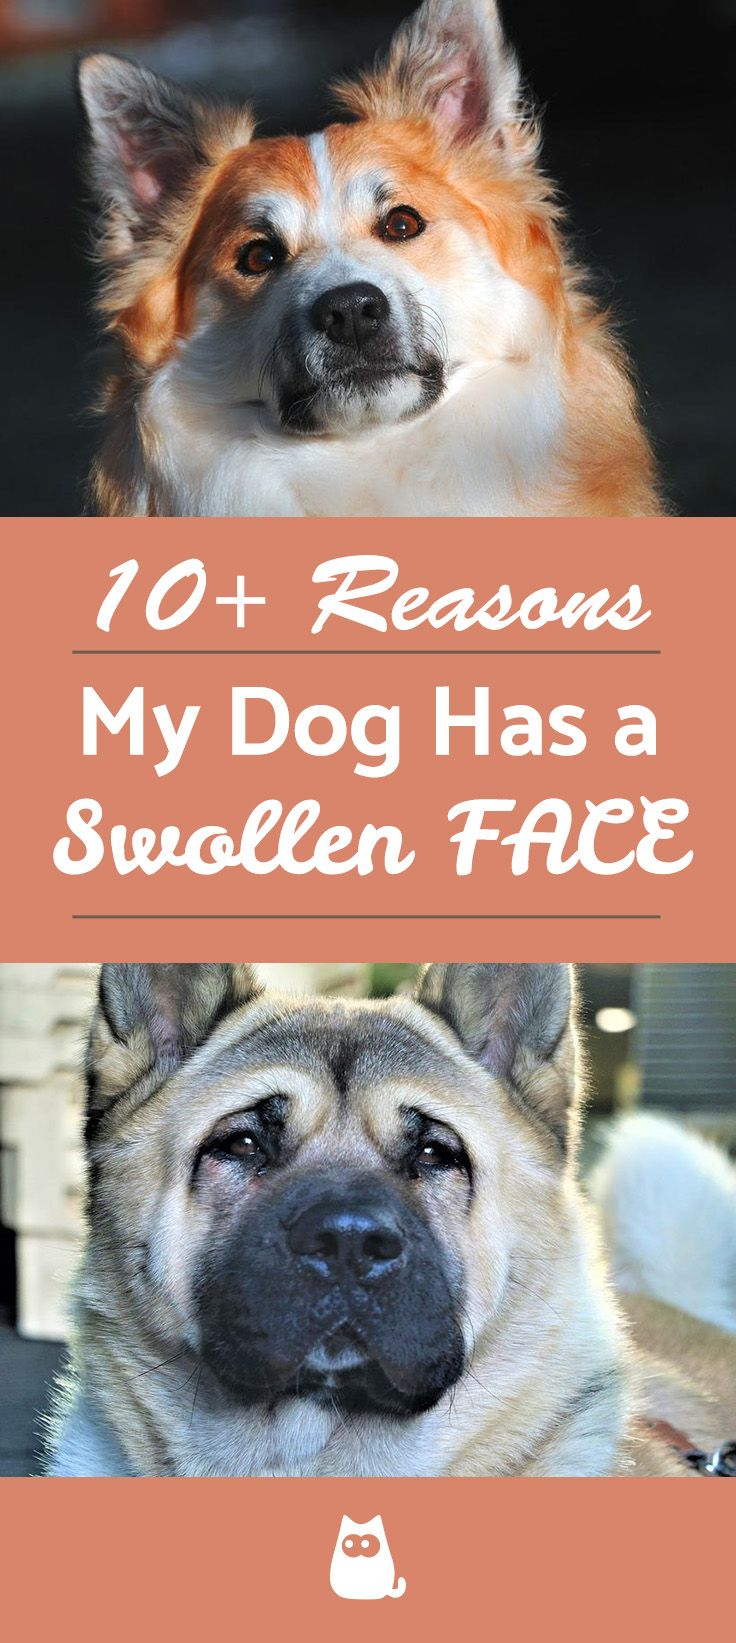 My Dog Has A Swollen Face Swollen Face Medication For Dogs Dogs